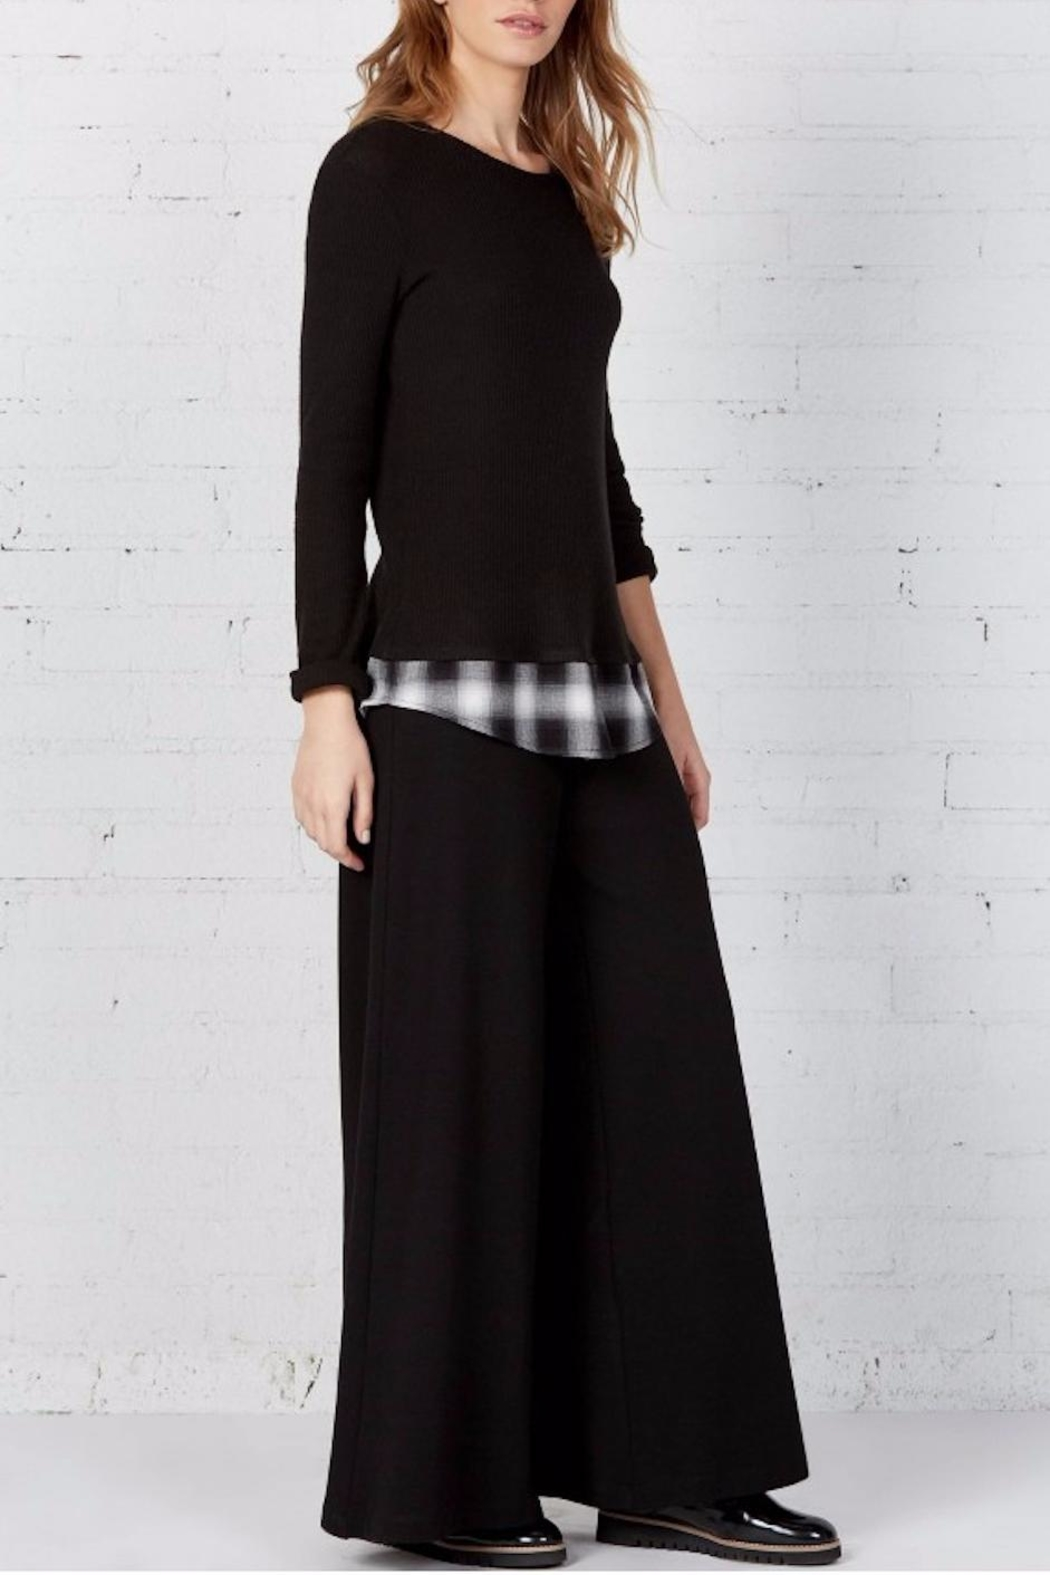 Bailey 44 Layered Plaid Top - Side Cropped Image